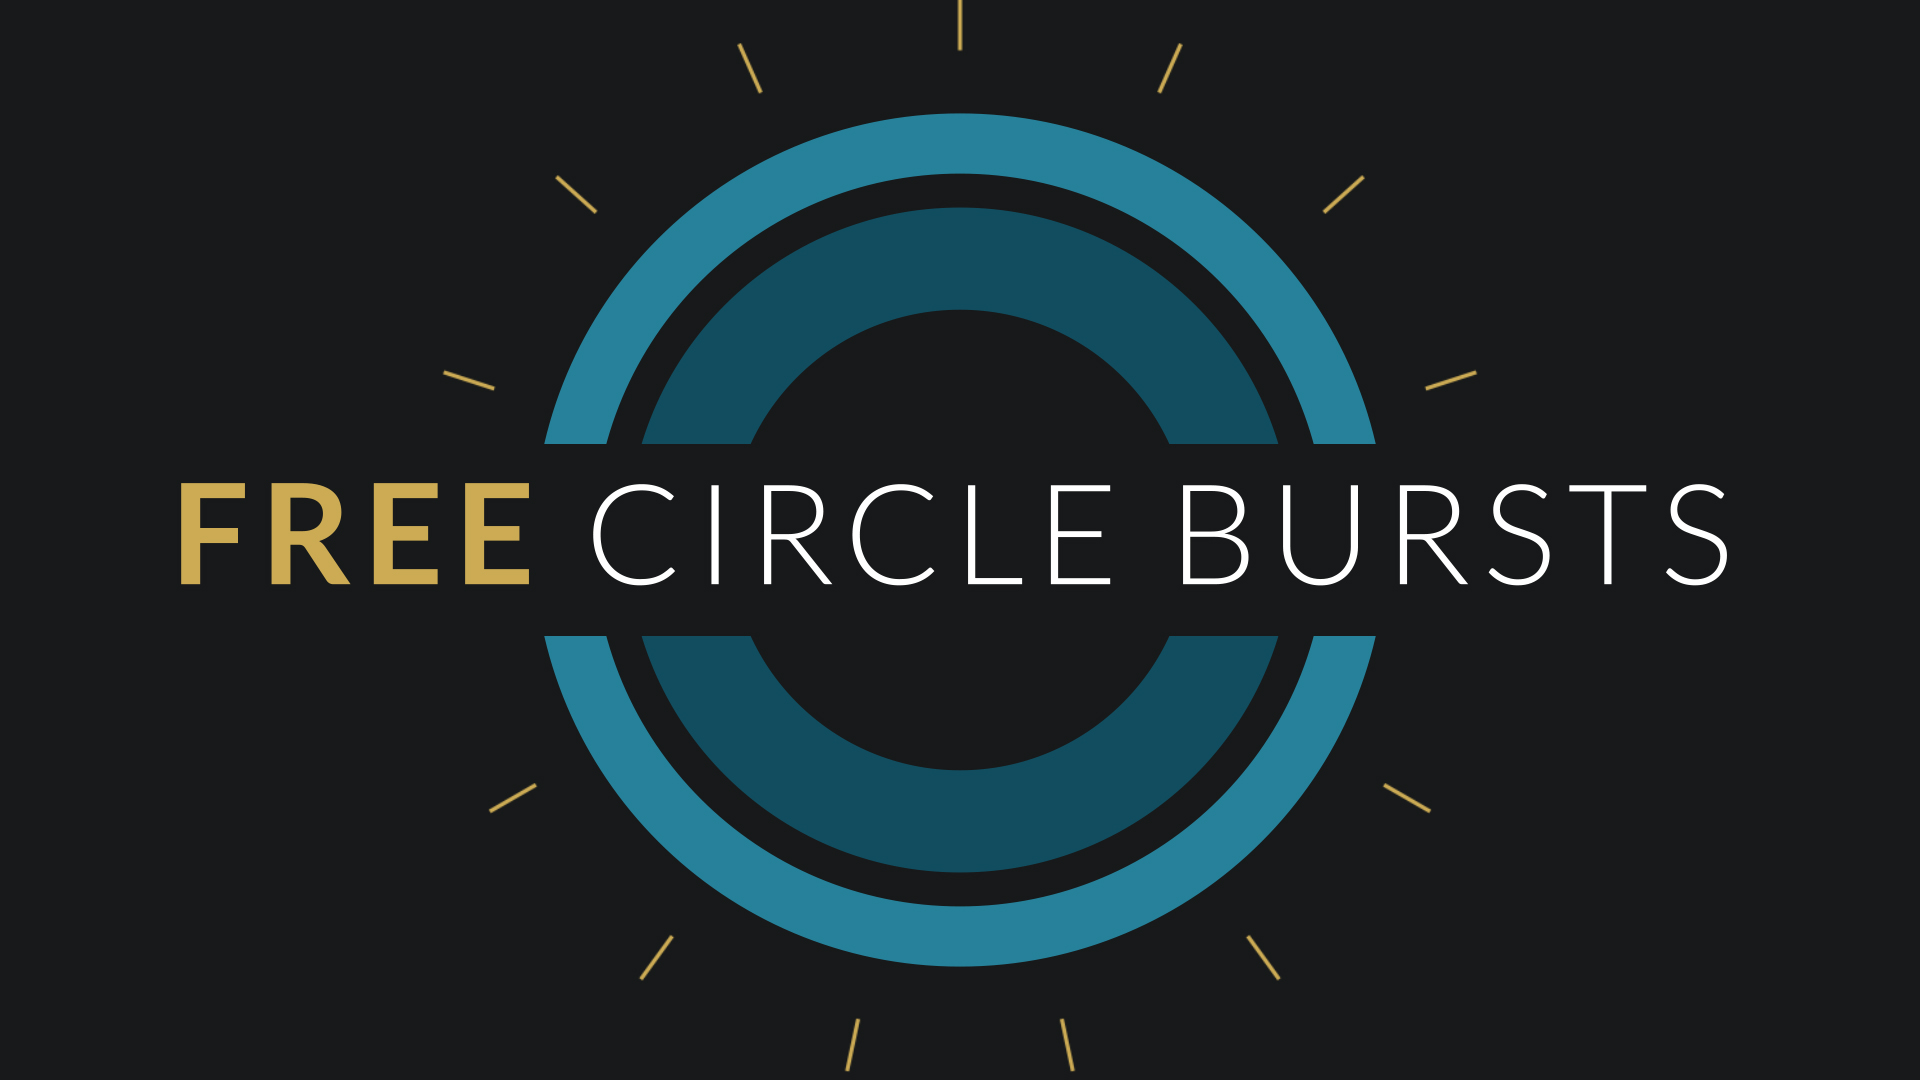 Free after effects template circle burst assets for Free after effects logo templates